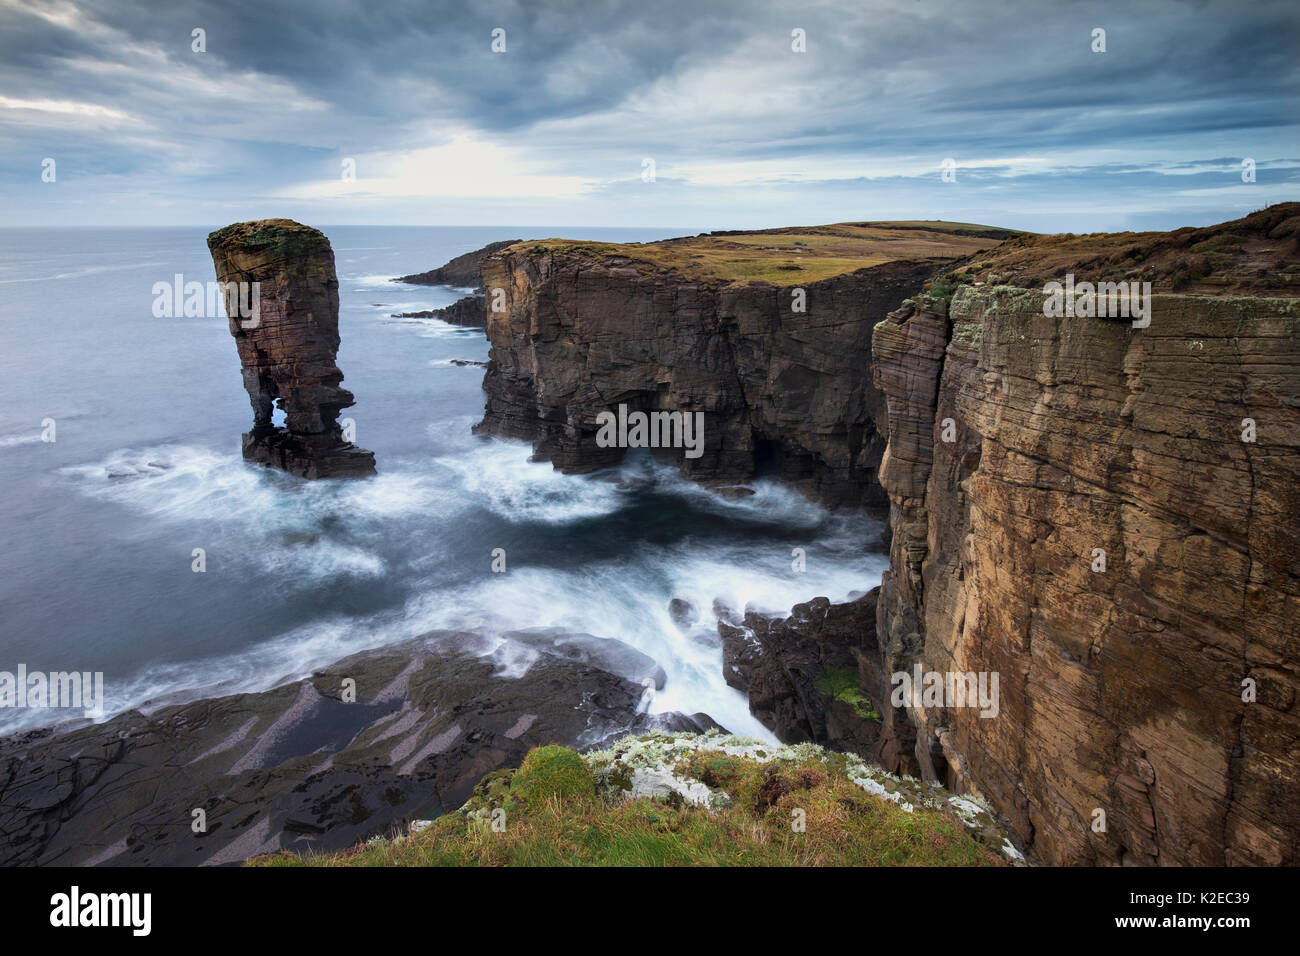 Yesnaby sea stack in stormy light, Orkney, Scotland, October 2014. - Stock Image